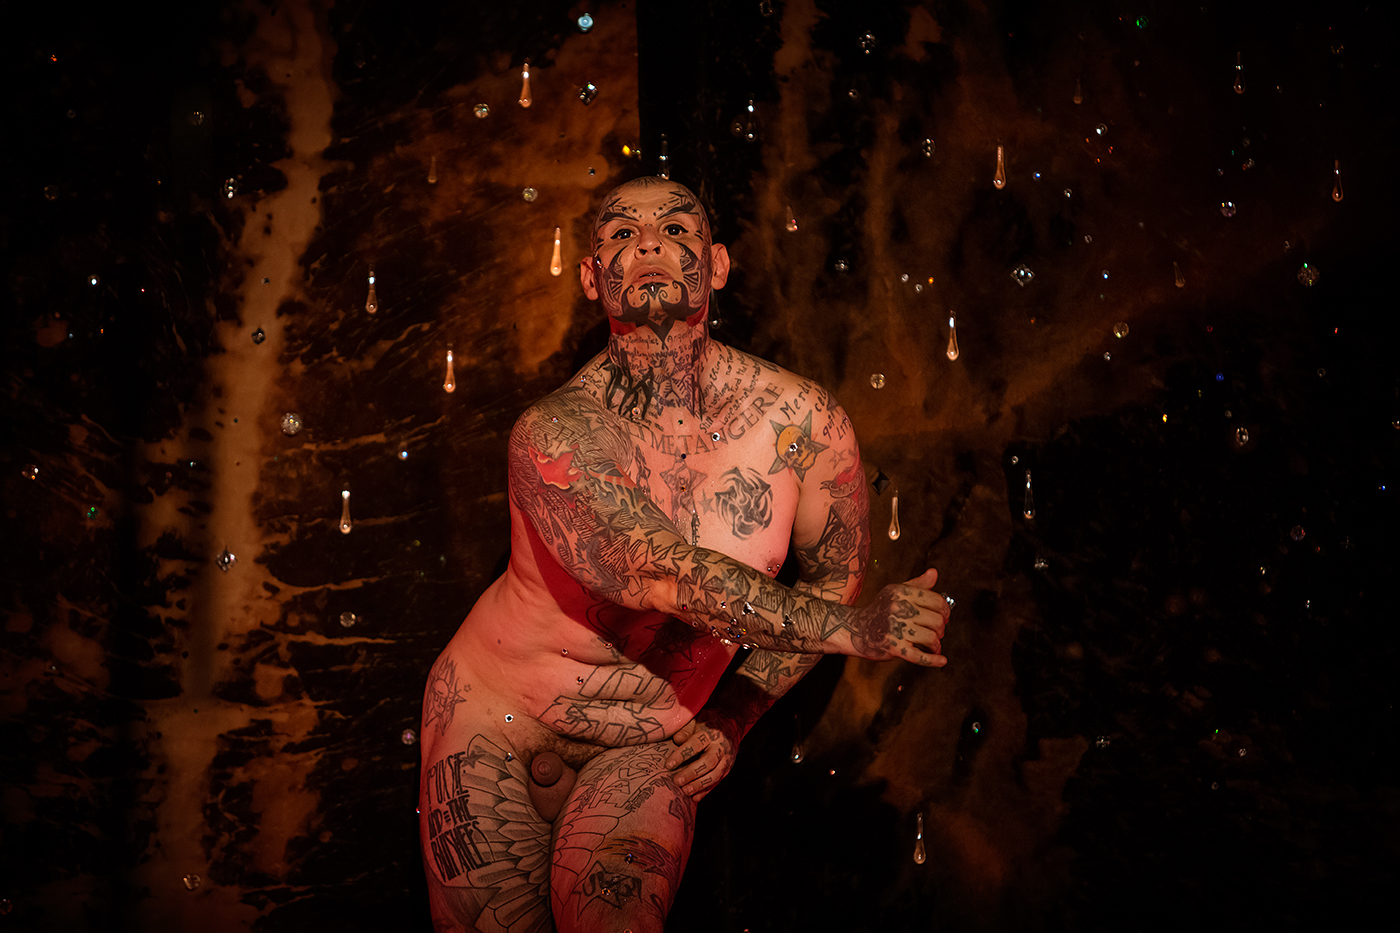 photographe-reportage-Uccello-Festival-a-corps-2017-guillaume-heraud-11